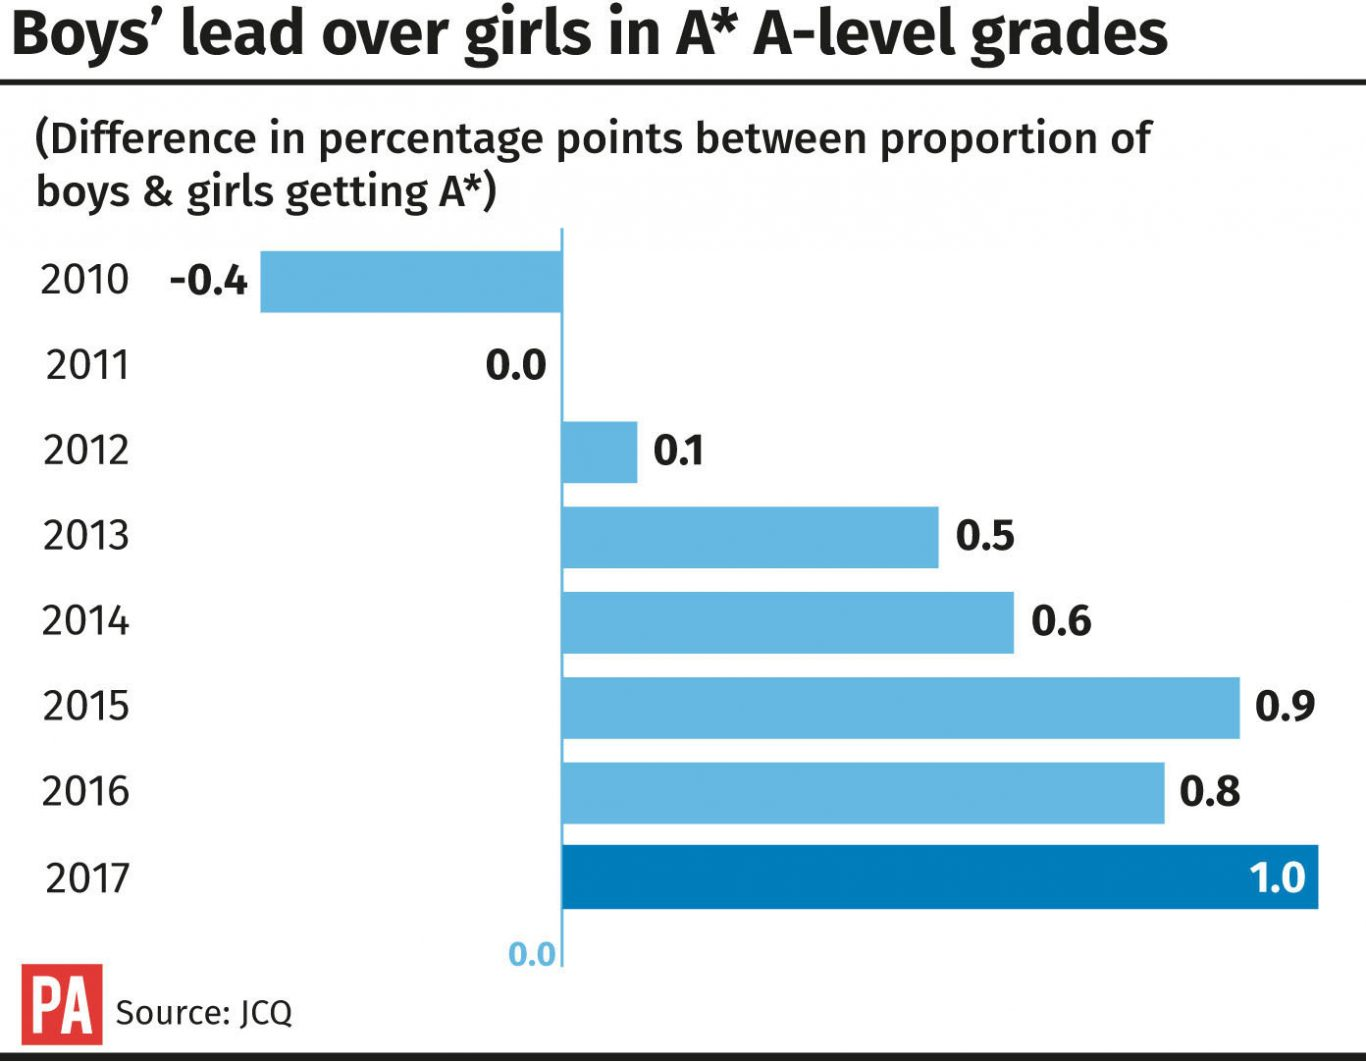 Boys' lead over girls in A* A-level grades